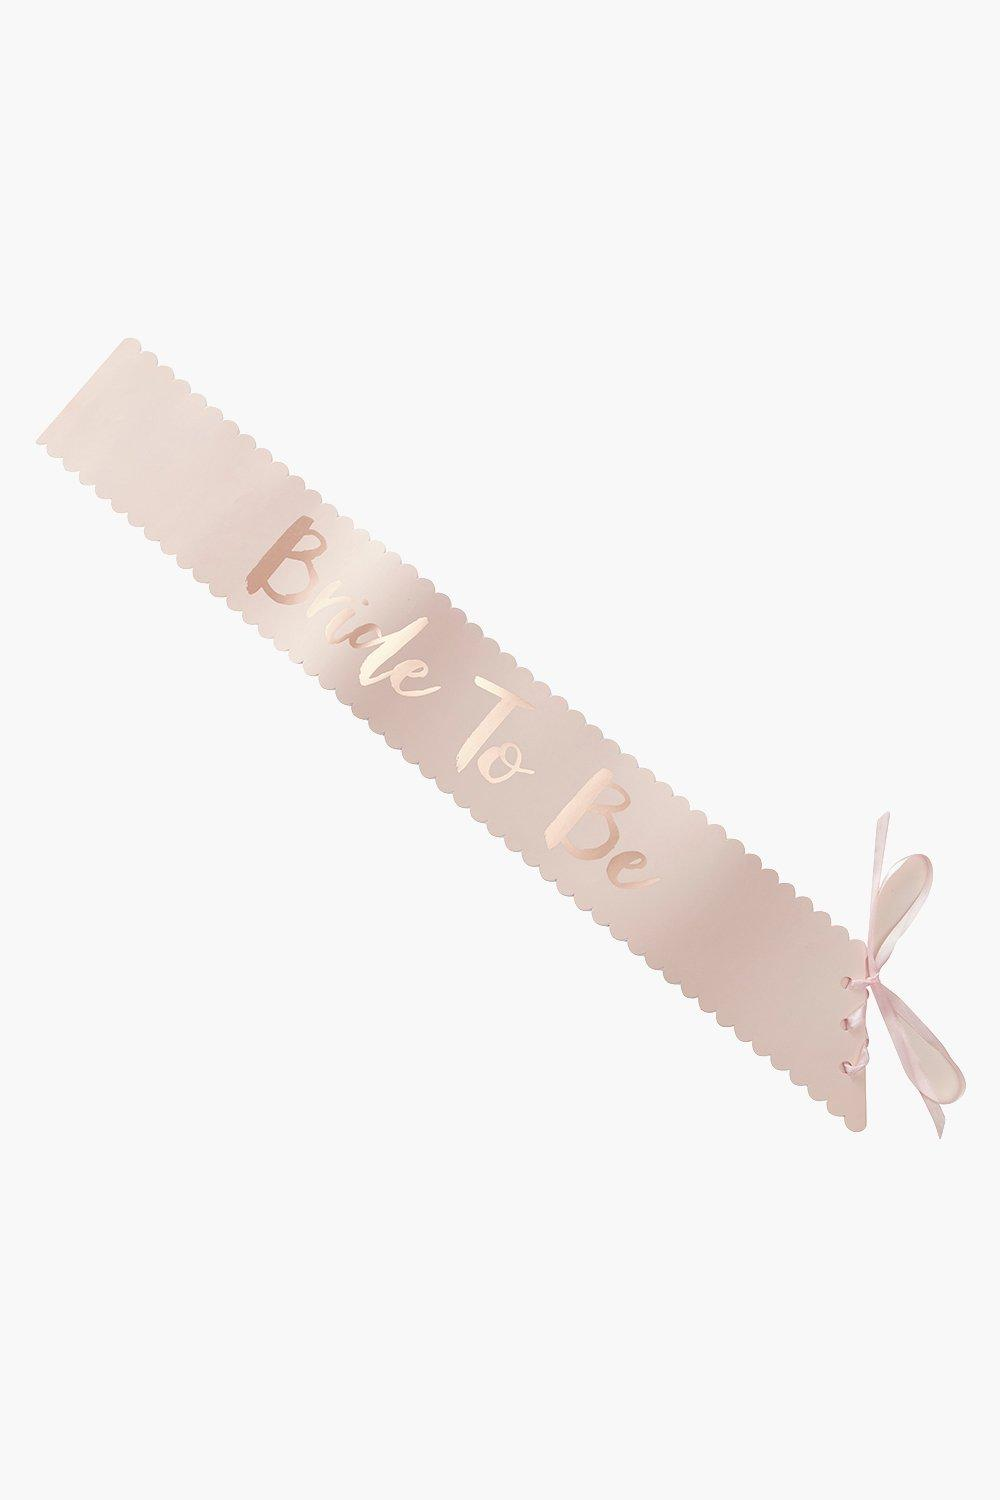 Metallic Rose Gold Sash - rose gold - Bride Metall